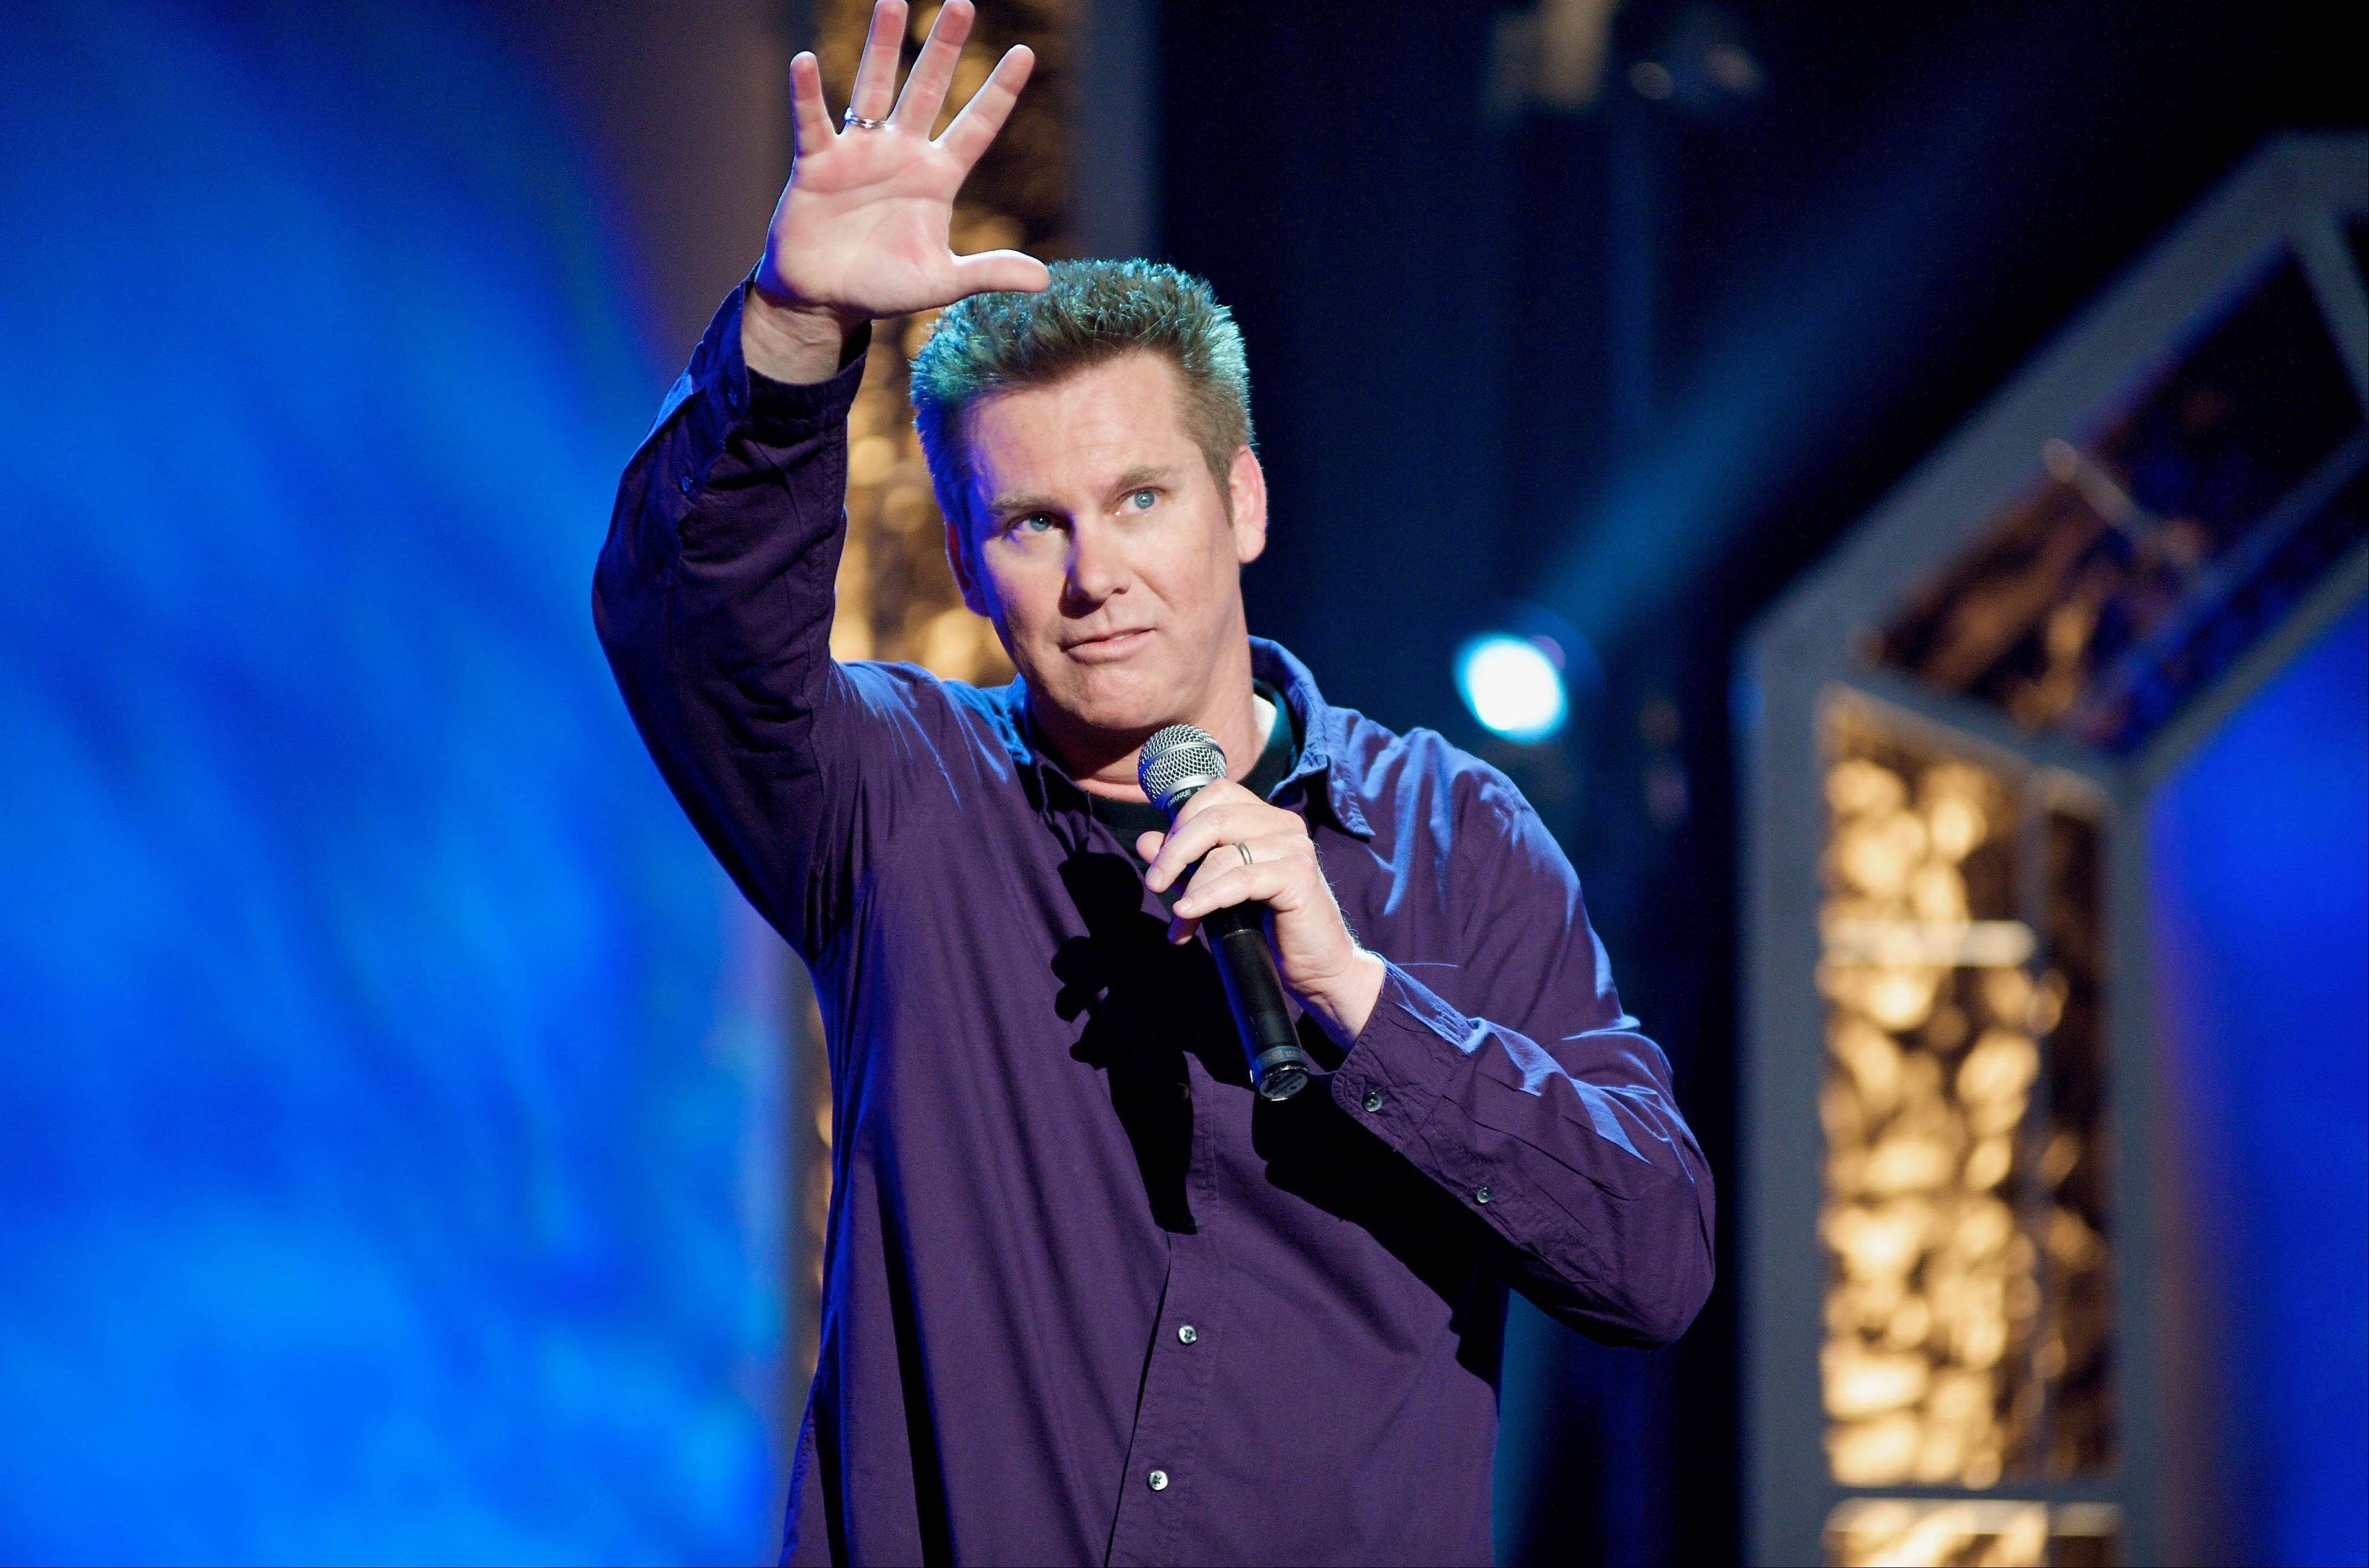 Comedian Brian Regan performs Friday at the Improv Comedy Showcase in Schaumburg.